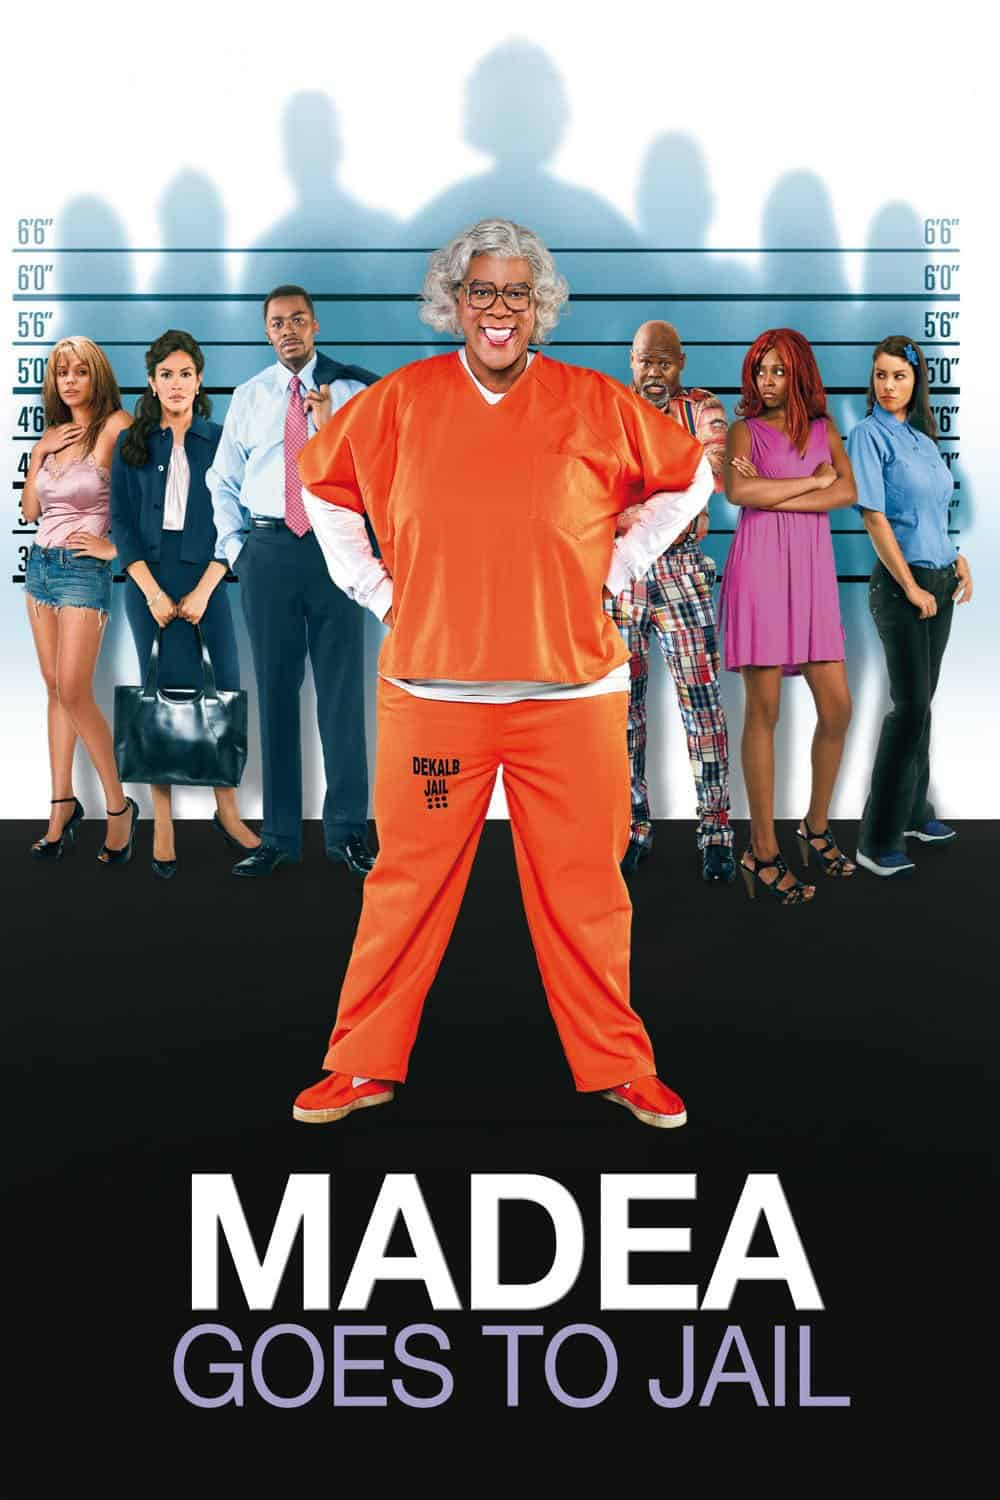 Madea Goes to Jail, 2009